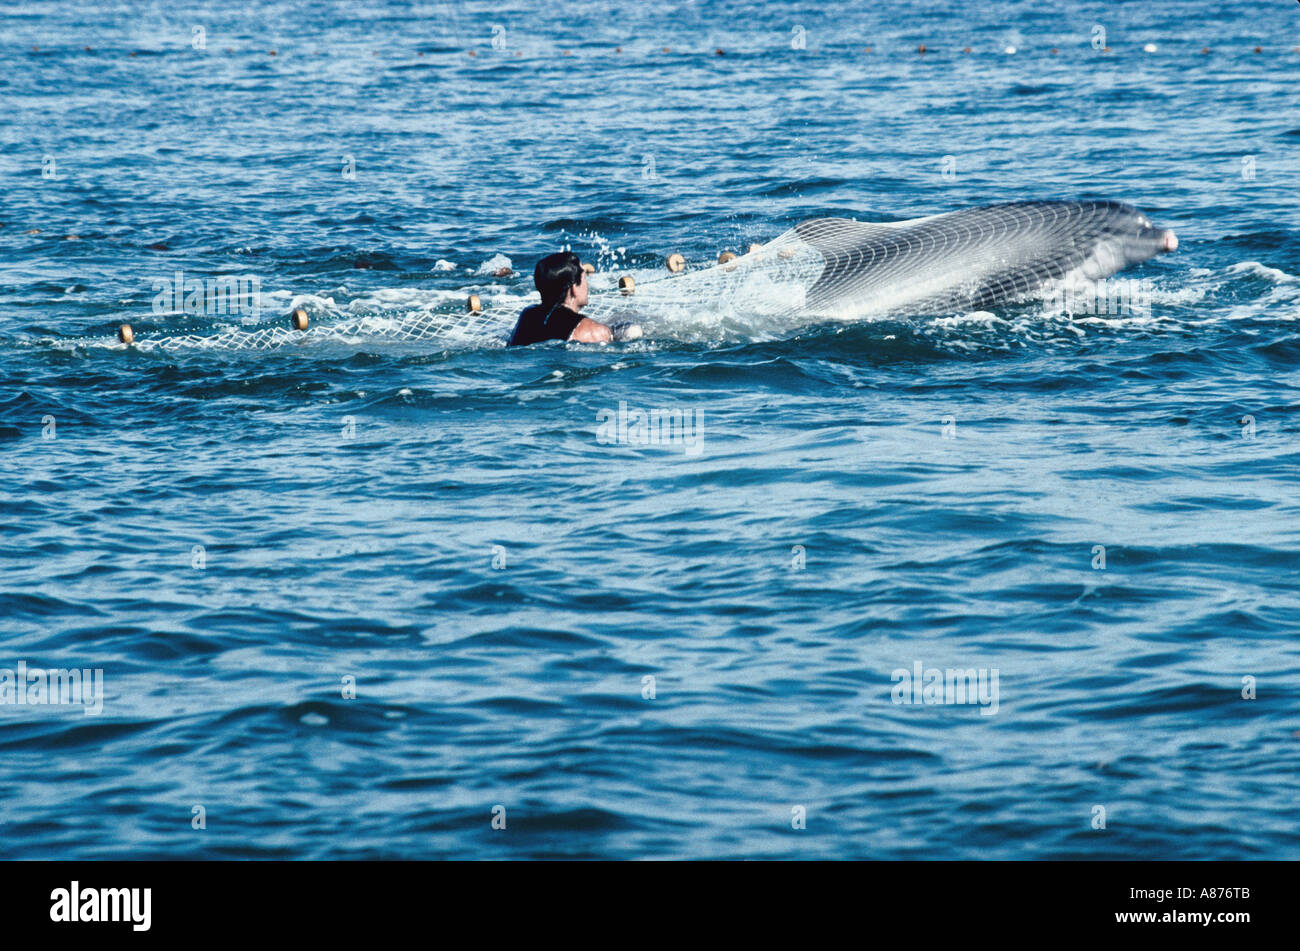 USA Florida Hunting of dolphins in the Gulf of Mexico - Stock Image